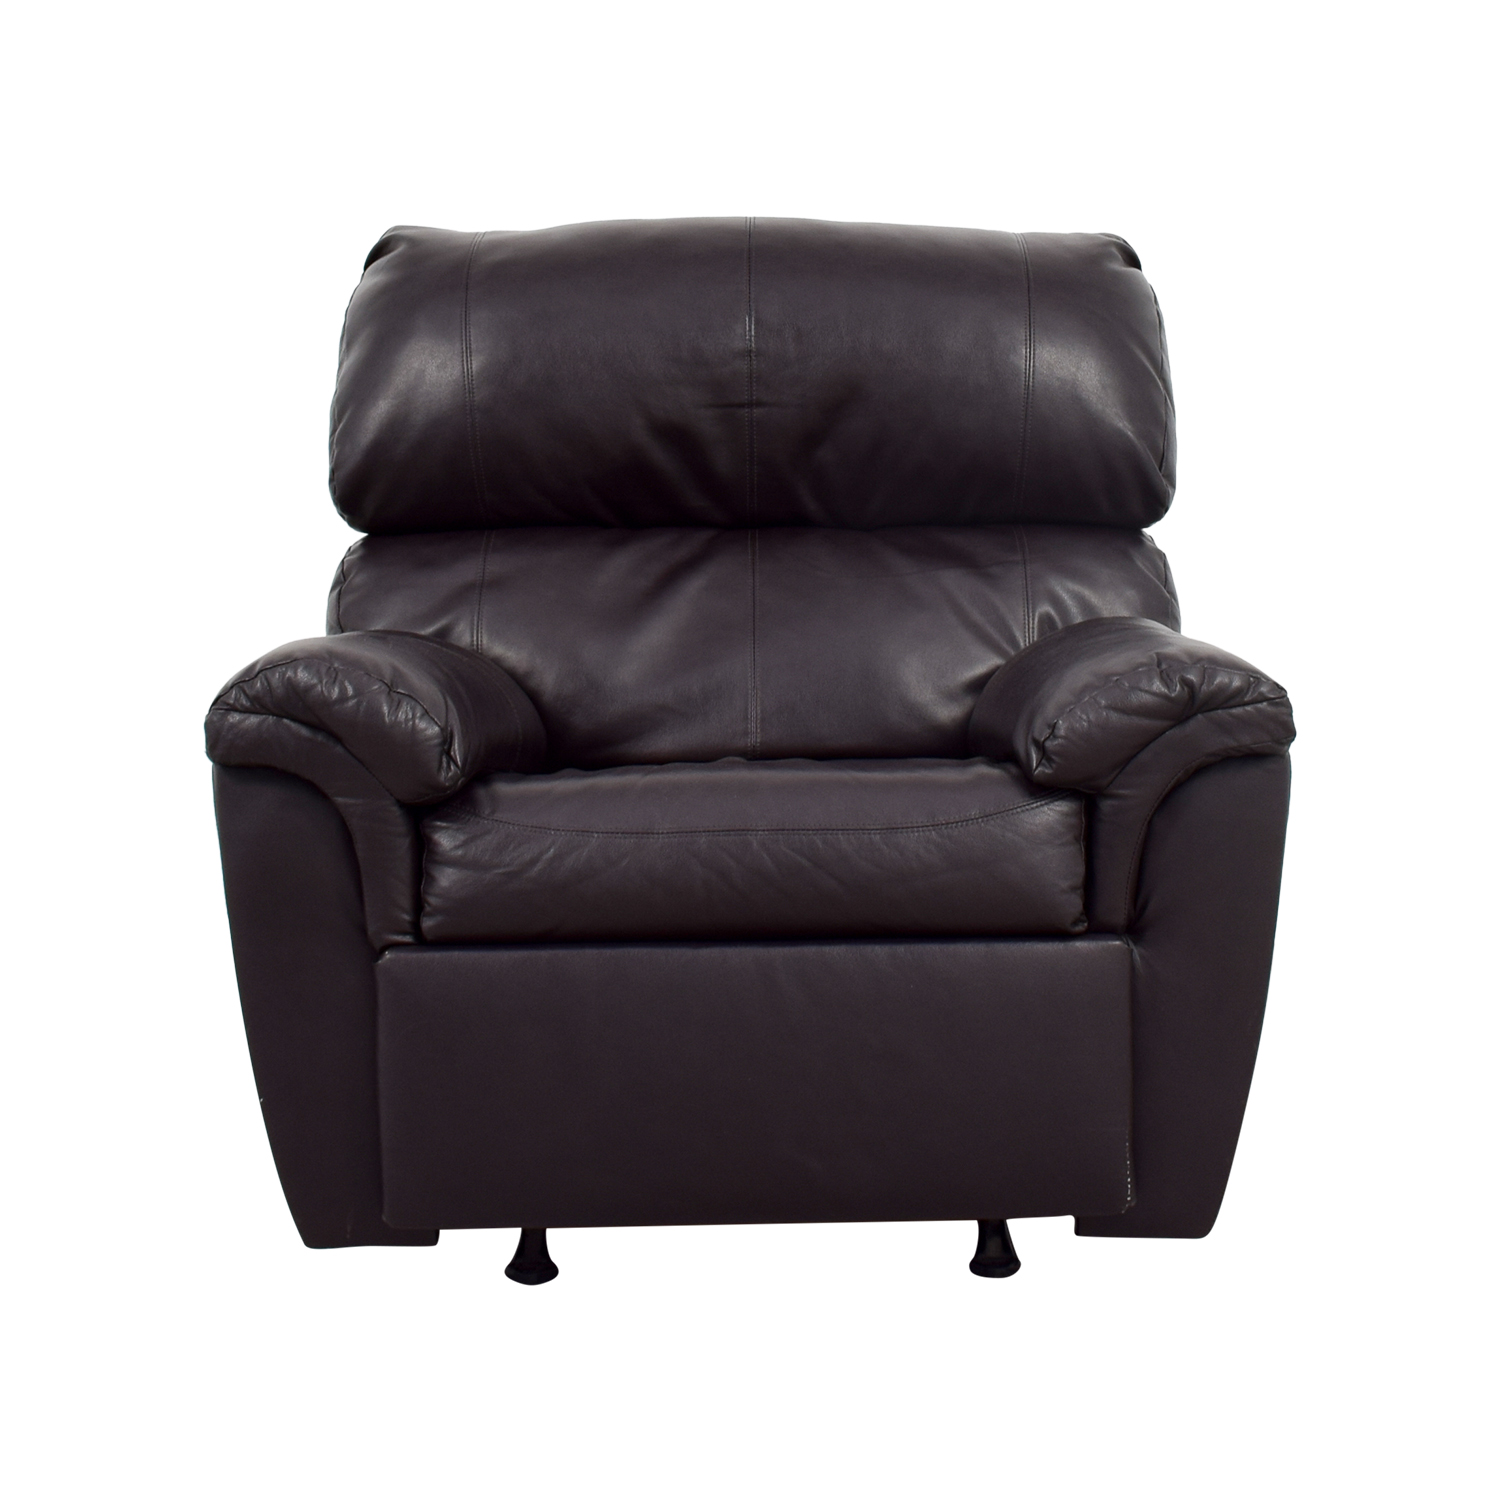 Cheap Recliner Chair Jonathan Adler Second Hand Coupon Code